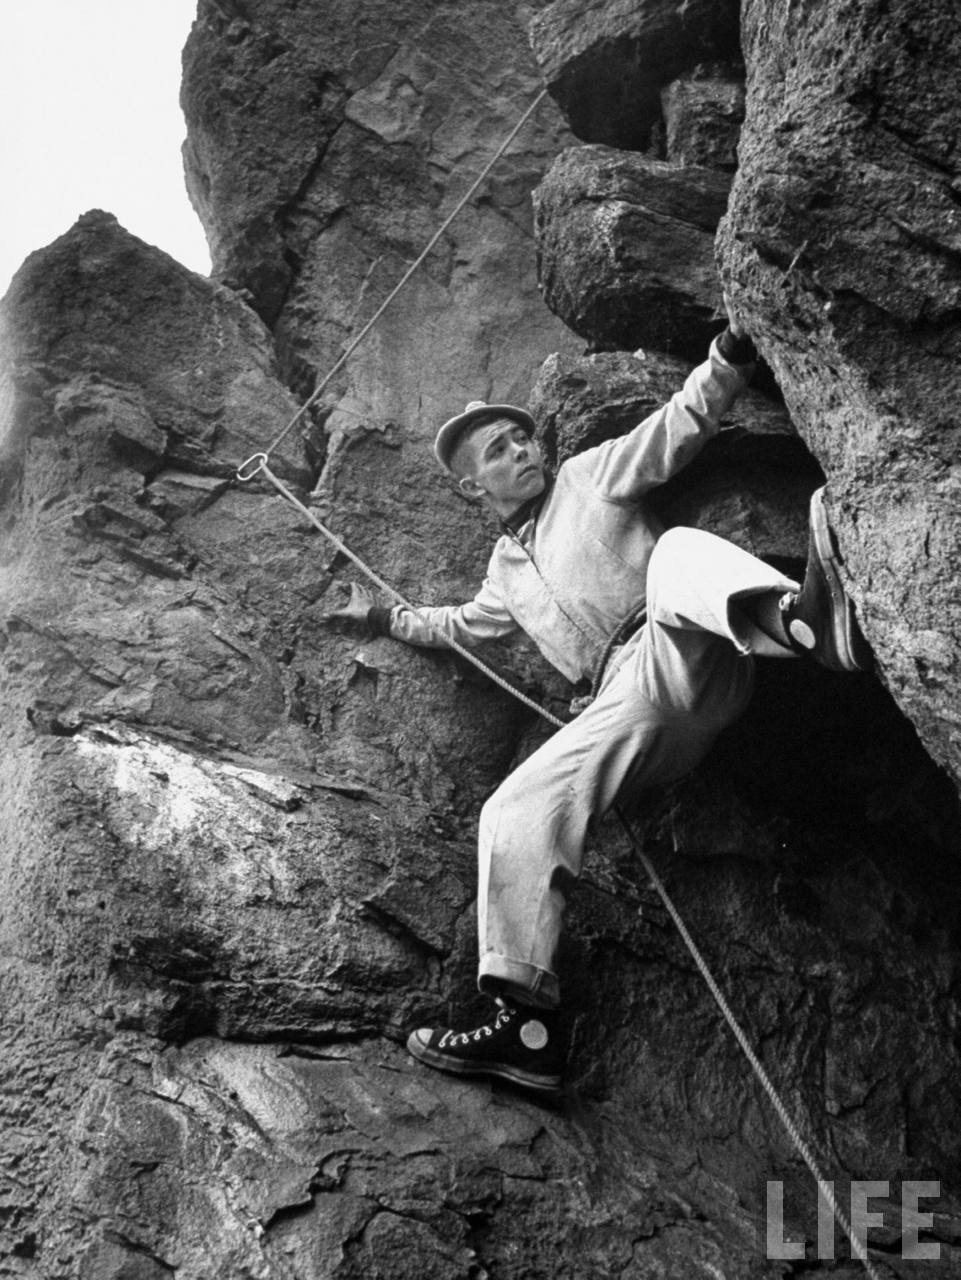 Rock Climbing Archival Blog